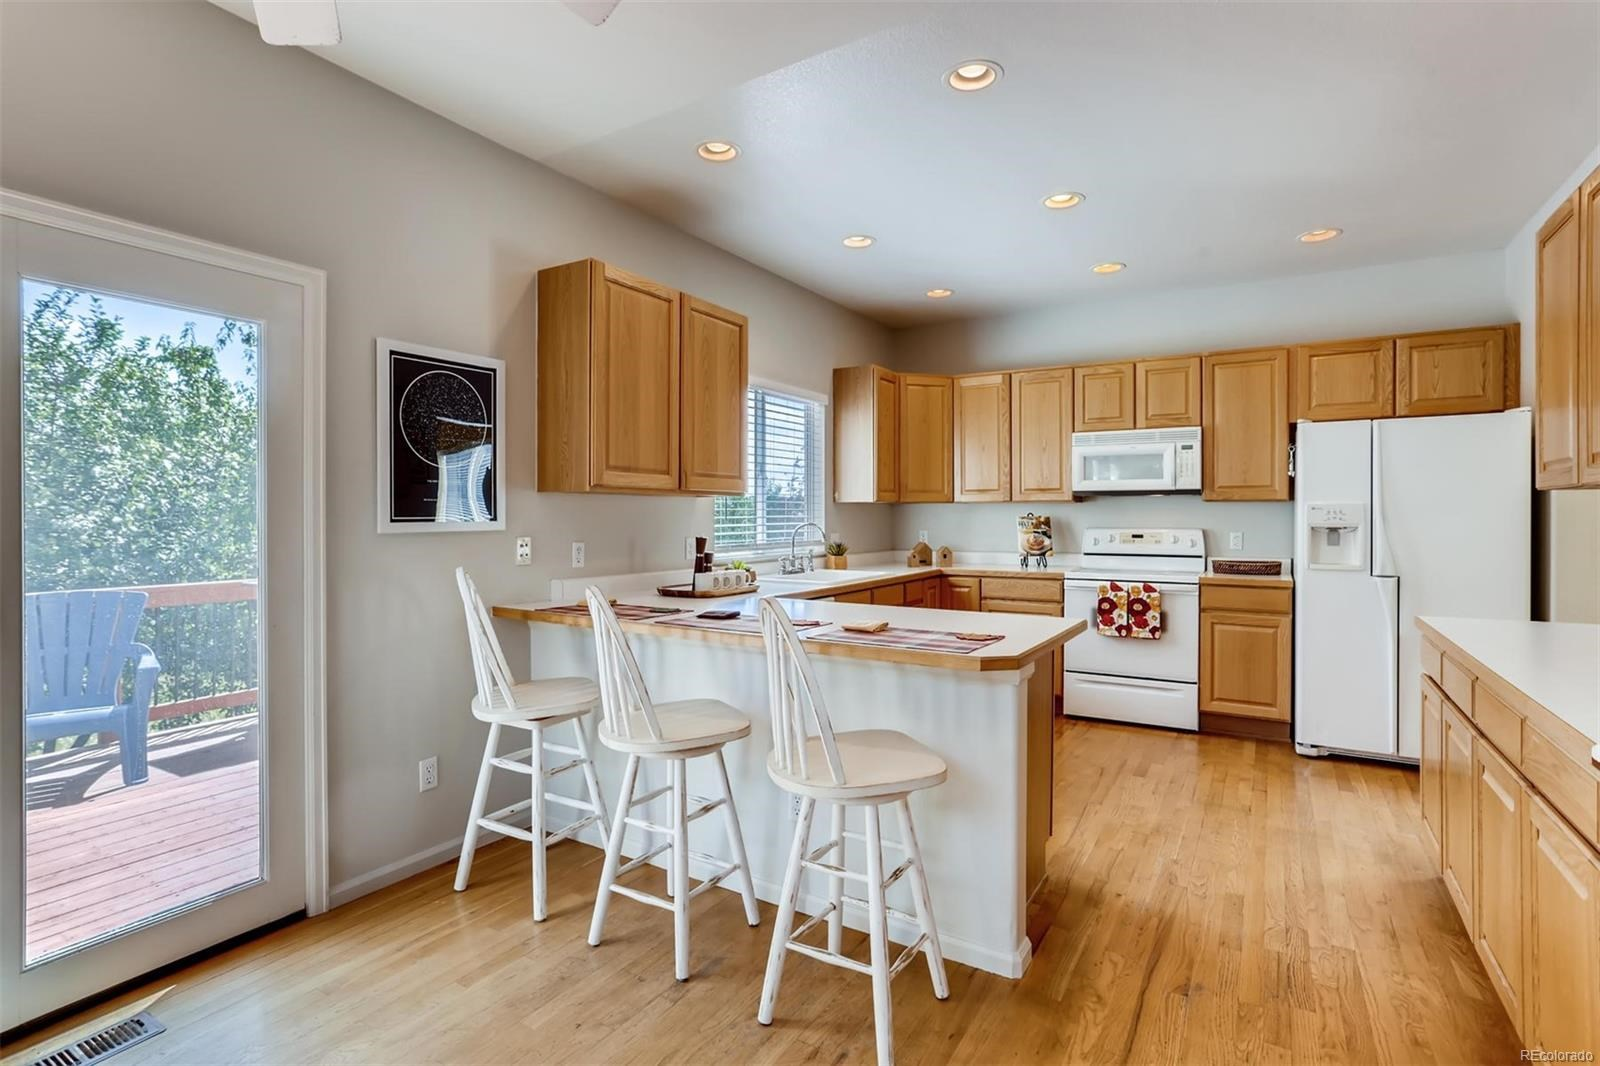 MLS# 5529297 - 1 - 20584  E Caley Drive, Centennial, CO 80016